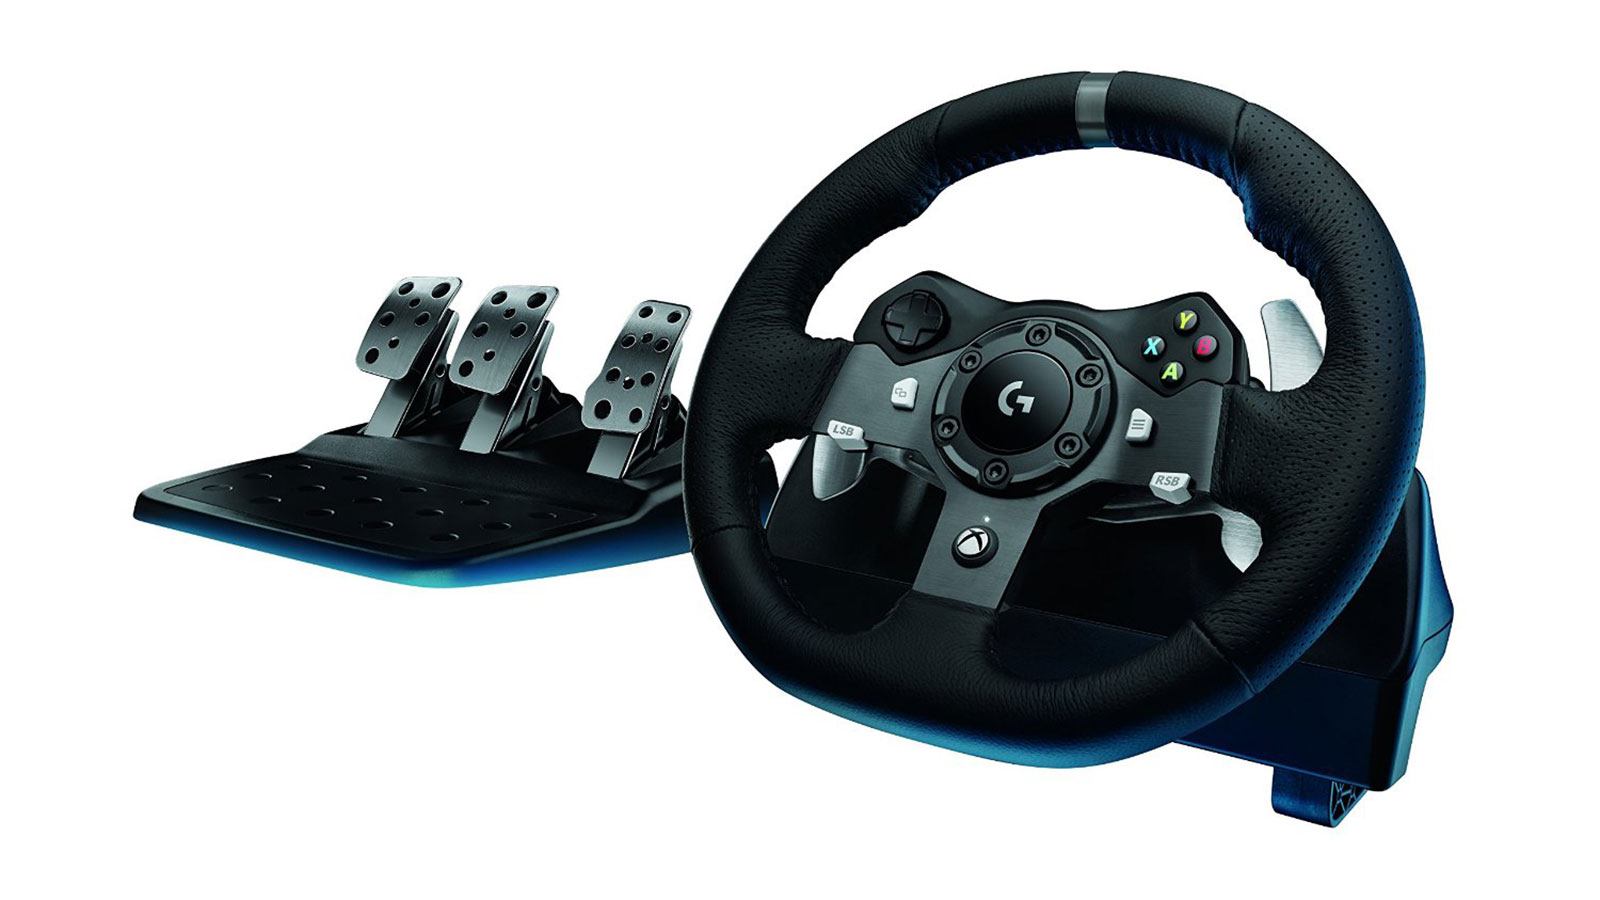 Logitech G920 Driving Force Racing Wheel | gifts for men | gifts for drivers